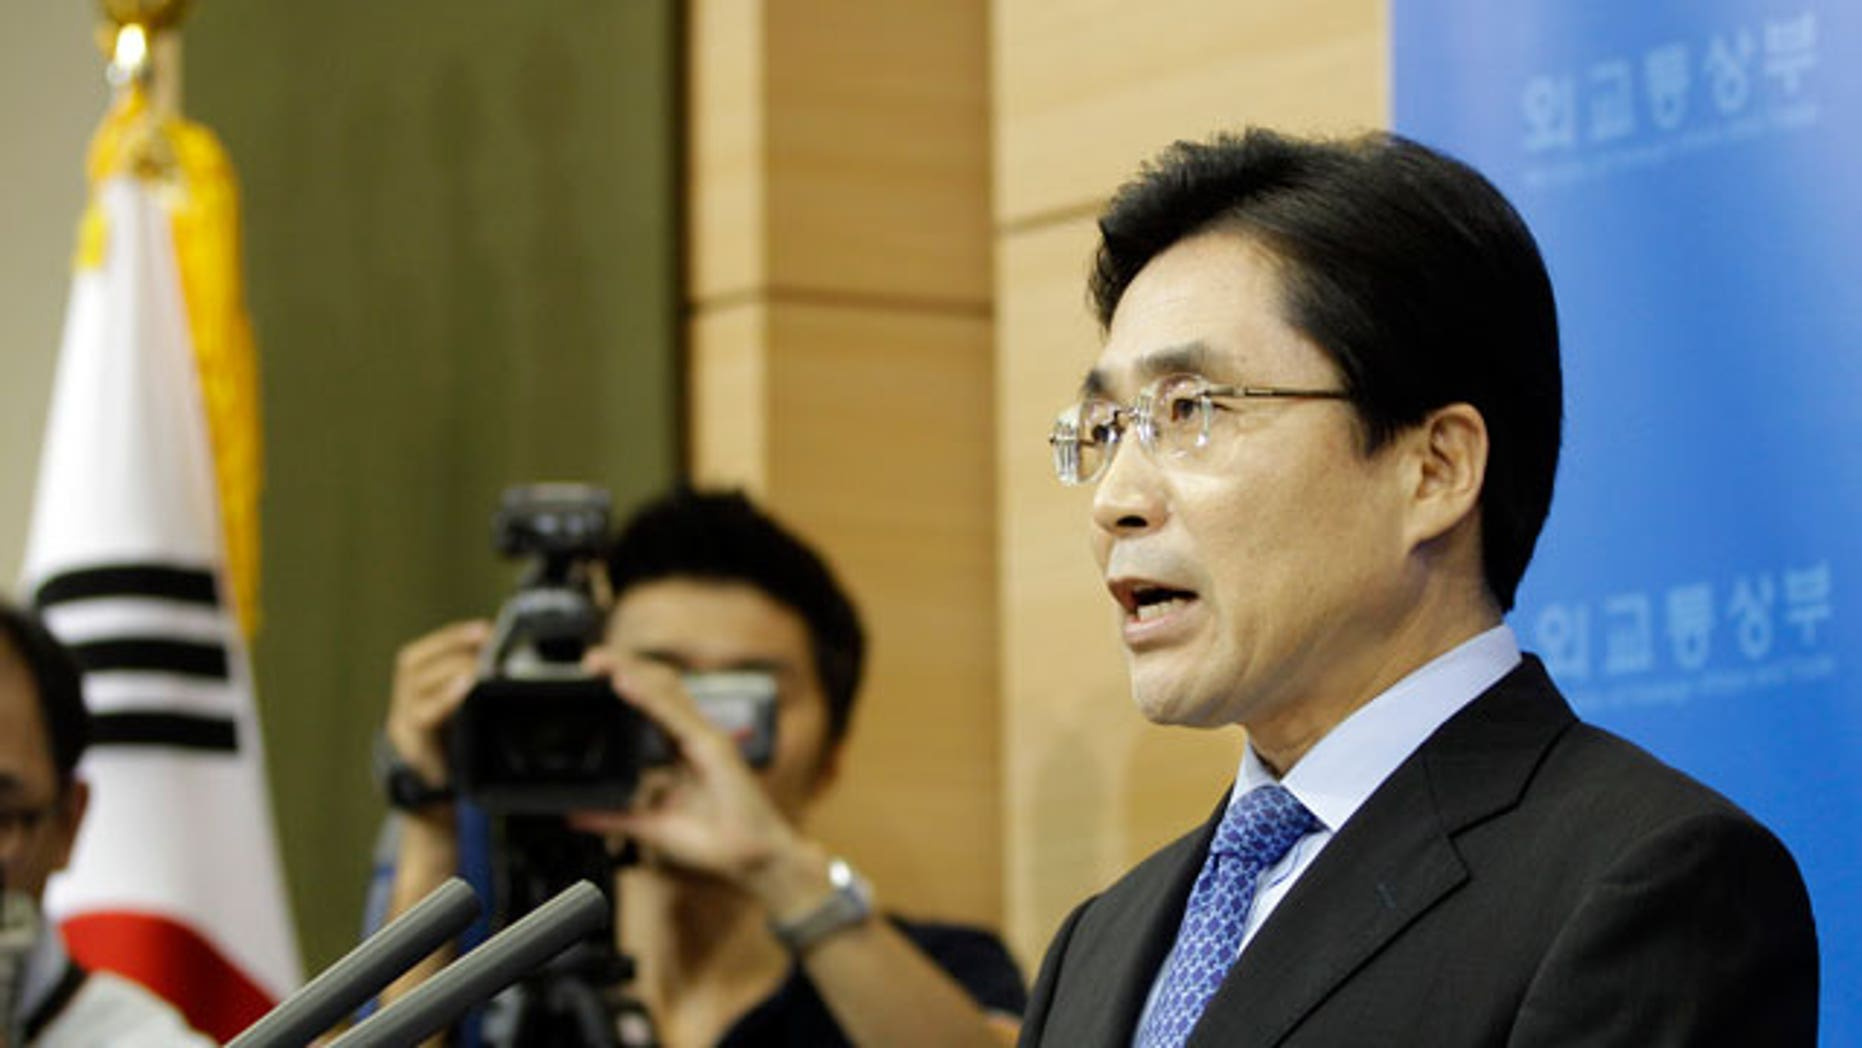 South Korean Foreign Ministry spokesman Kim Young-sun announces the country's sanctions against Iran at Foreign Ministry in Seoul, South Korea, Wednesday, Sept. 8, 2010. South Korea said Wednesday it will ban unauthorized financial dealings with Iran as part of sanctions to join the U.S-led campaign to tighten restrictions against Tehran over its disputed nuclear enrichment program. Seoul blacklisted 102 entities, which include the Iranian Revolutionary Guard Corps and the Islamic Republic of Iran Shipping Lines, and 24 individuals for the sanctions, Kim said.